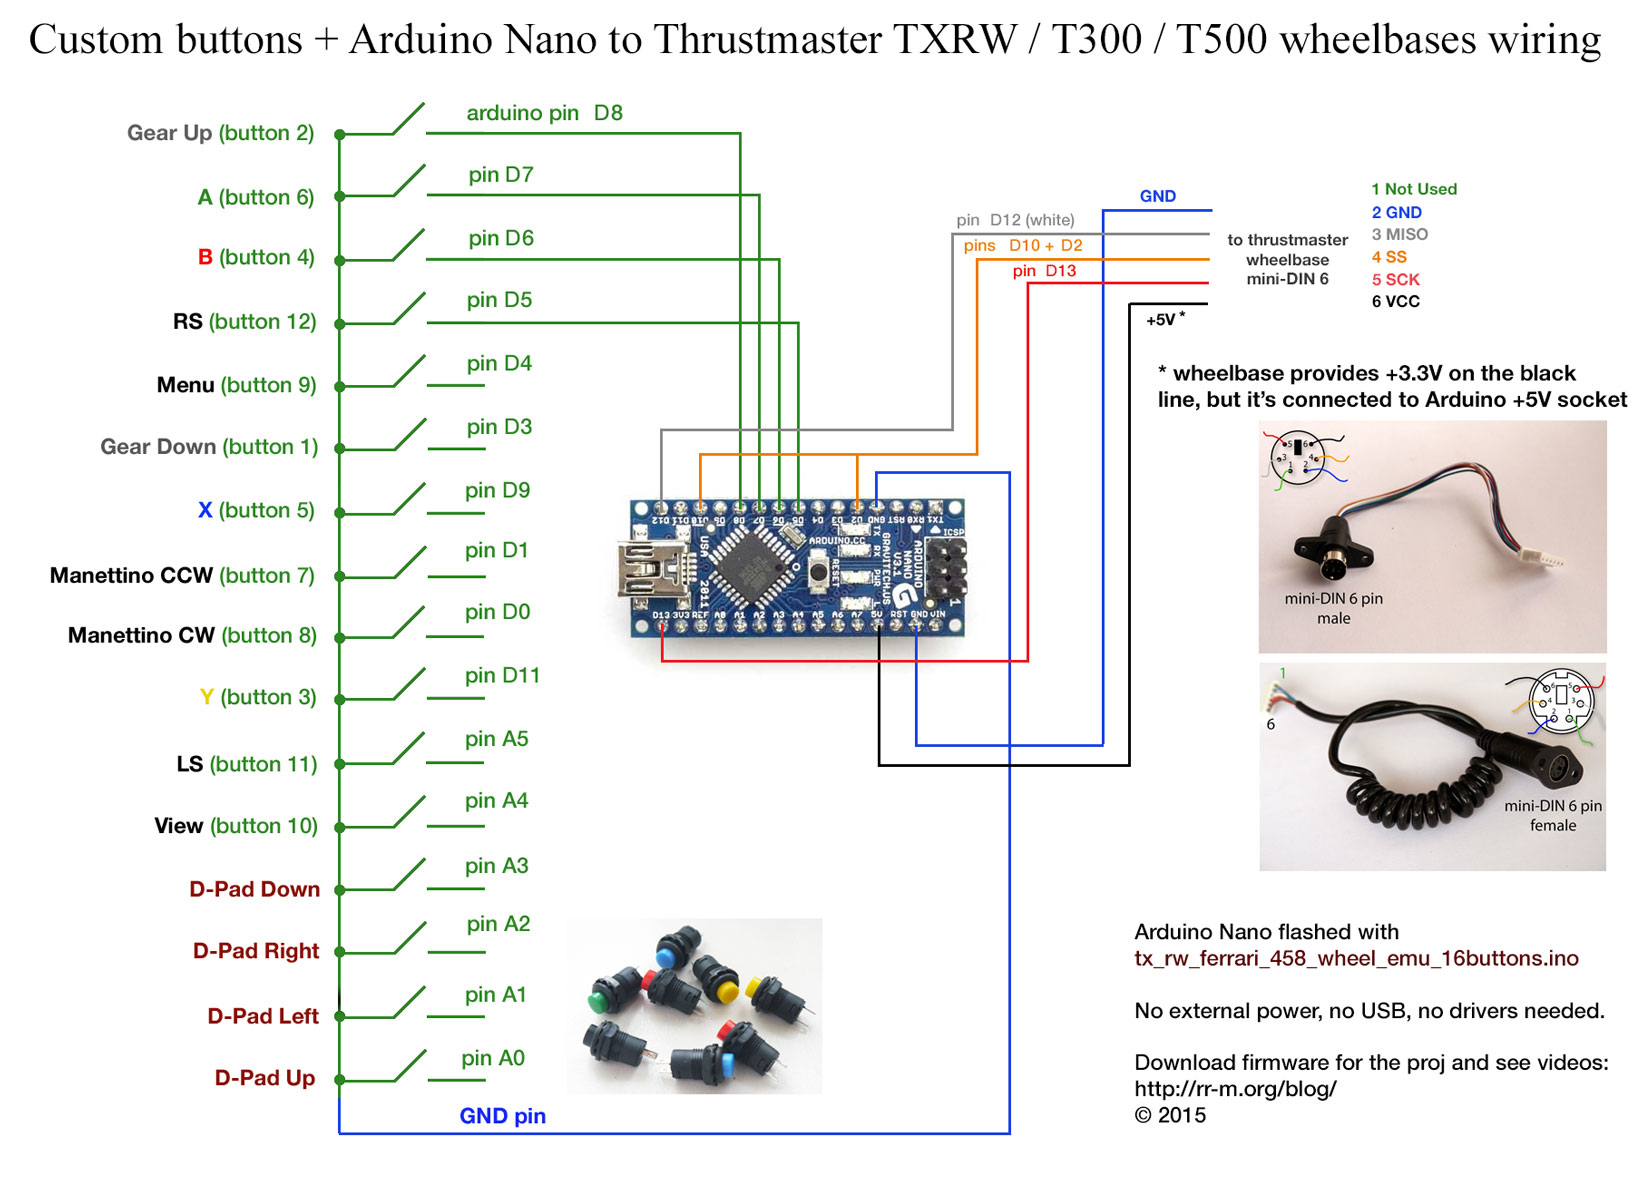 Ats Wiring Diagram Auto Electrical Igt G23 Arduino Nano Controlled Buttons For Thrustmaster